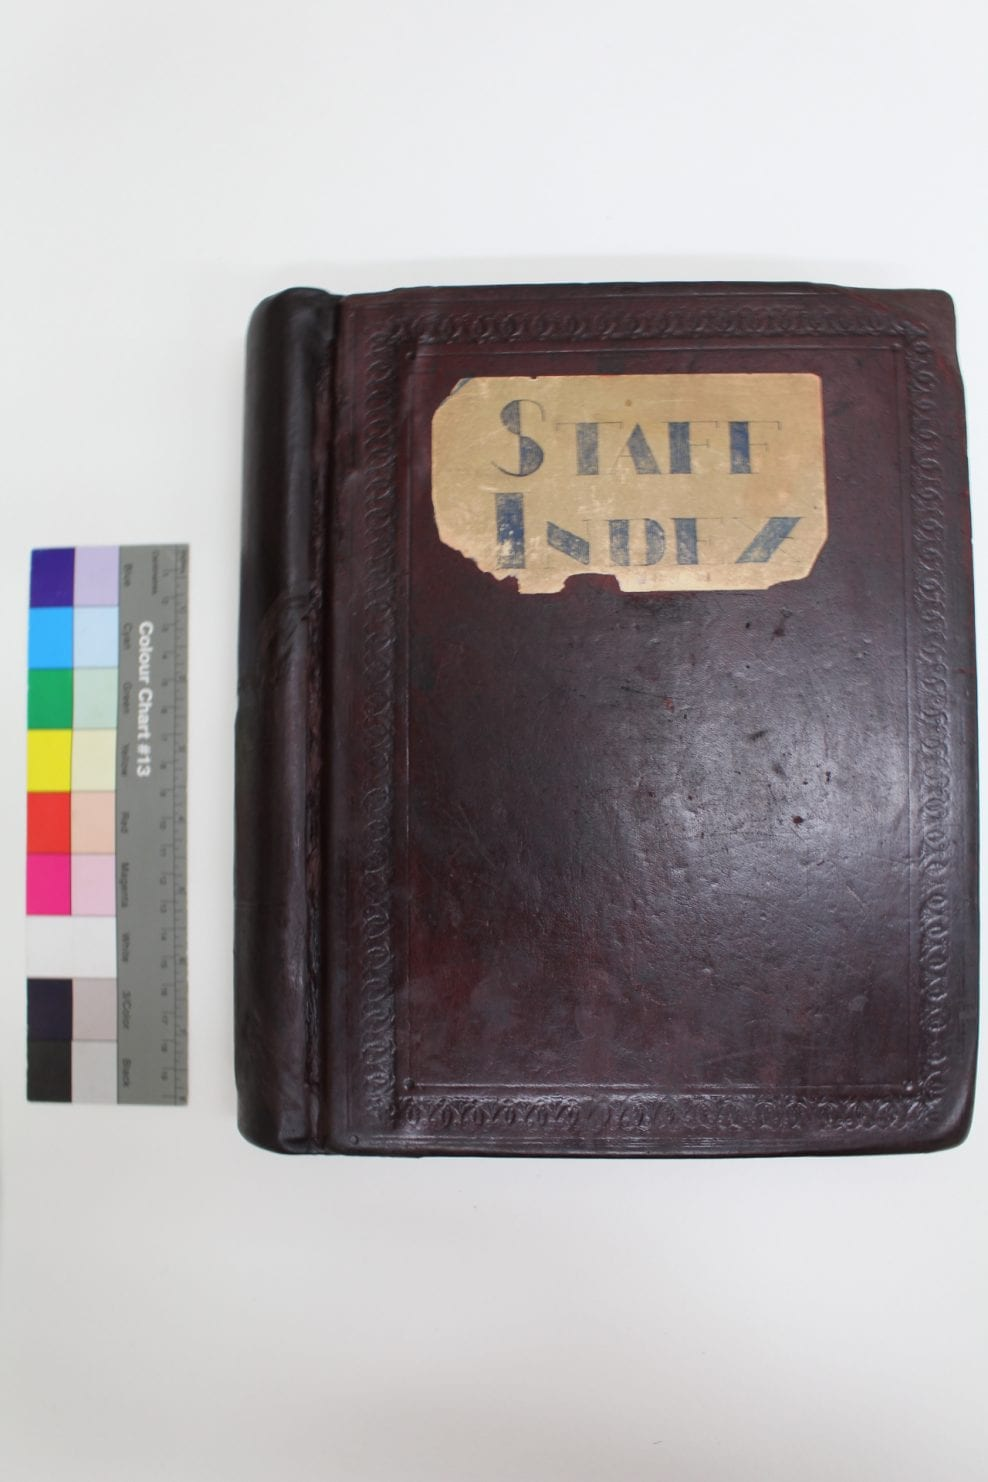 HSBC Staff Index – 1920's Spring Back Account Binding